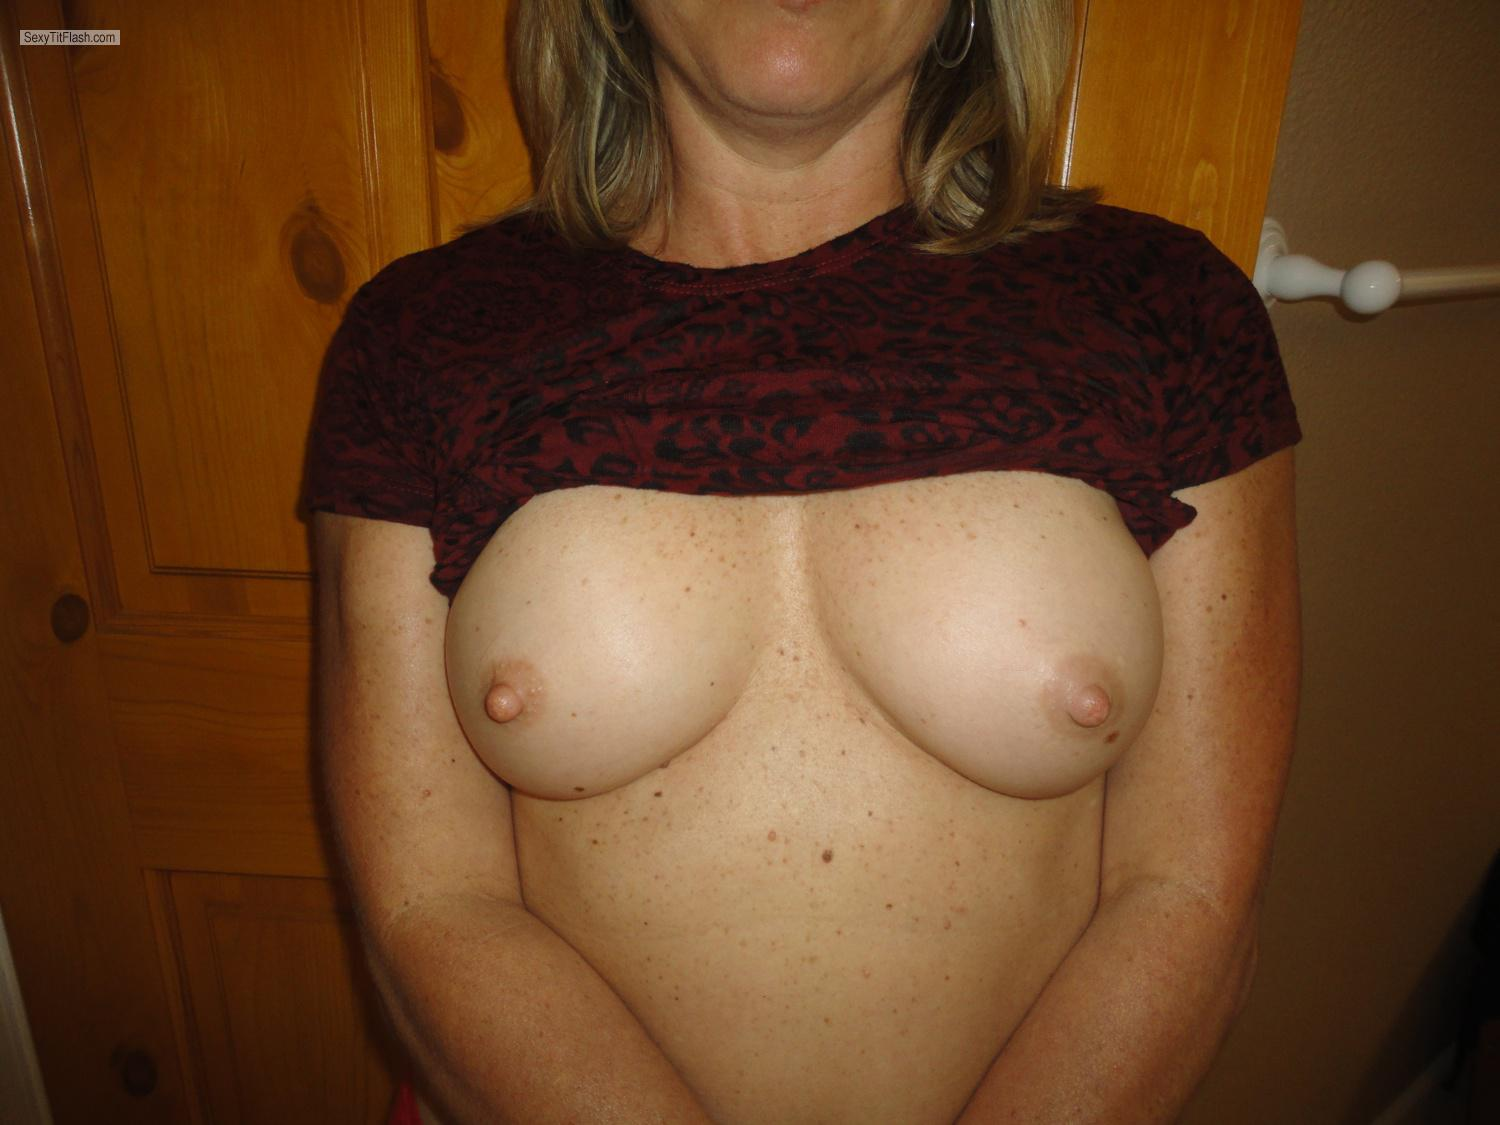 Tit Flash: Small Tits By IPhone - Nurse Cris from United States